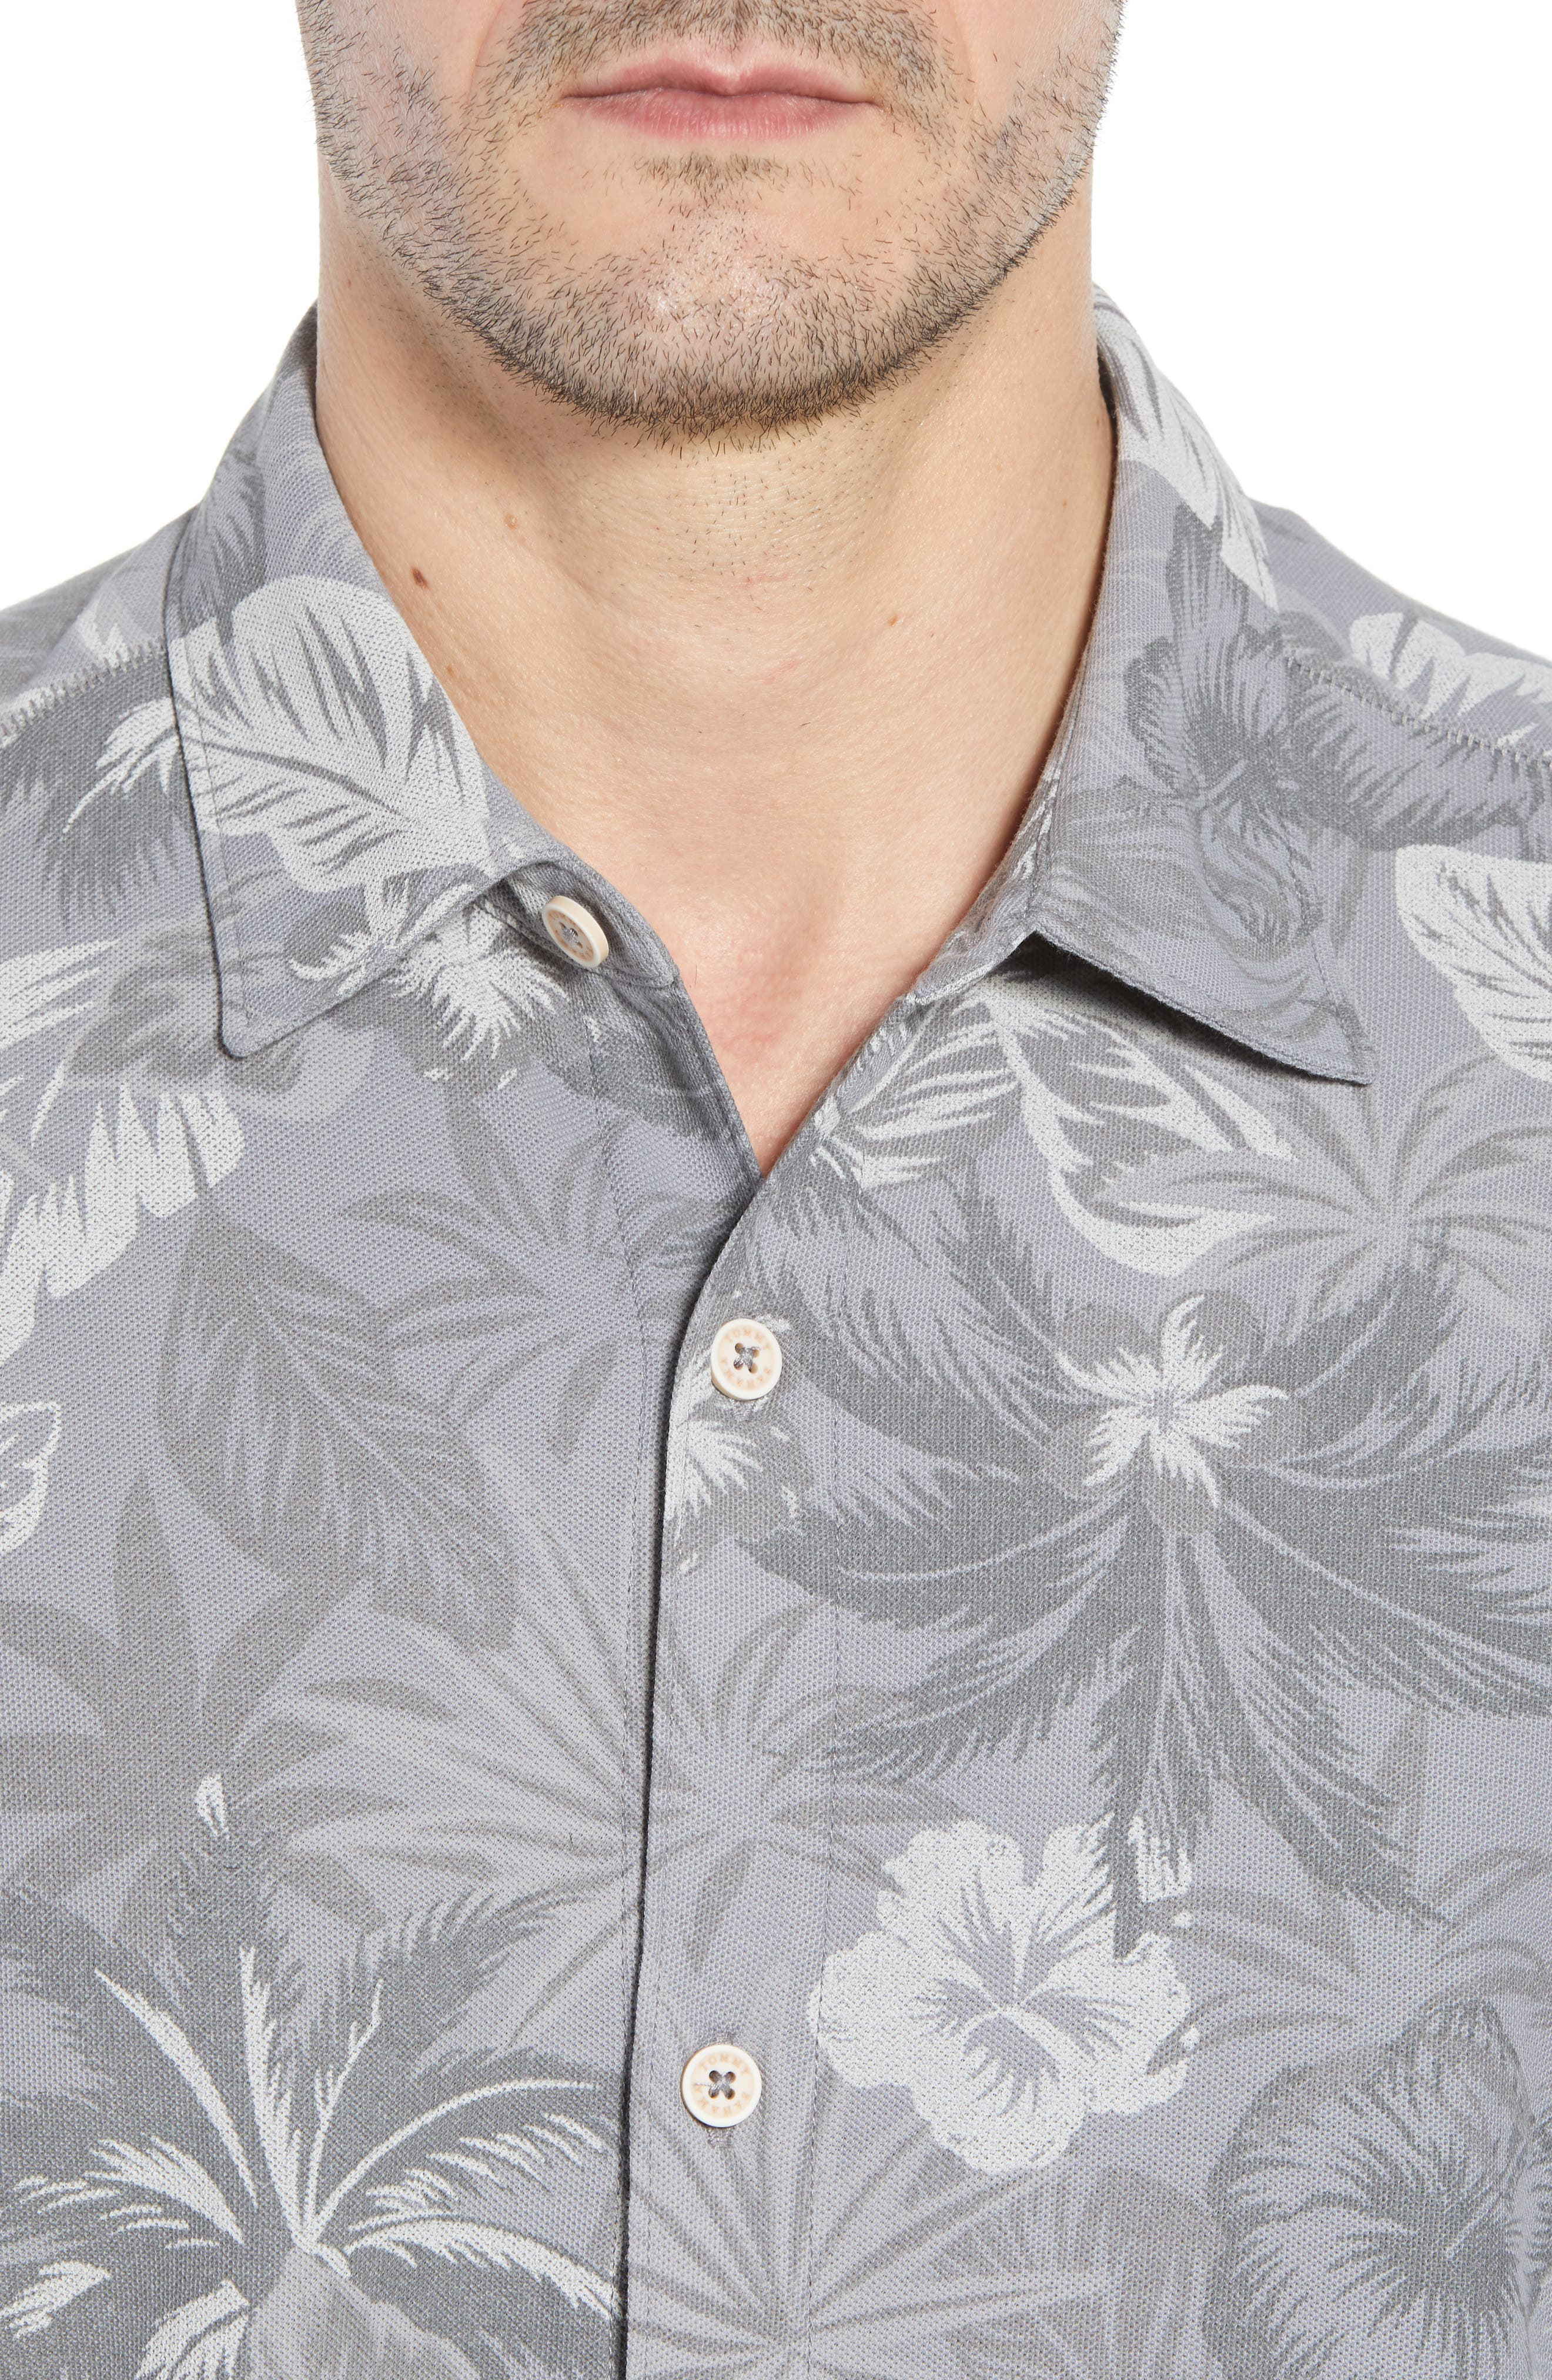 Fuego Floral Camp Shirt,                             Alternate thumbnail 4, color,                             Iced Slate